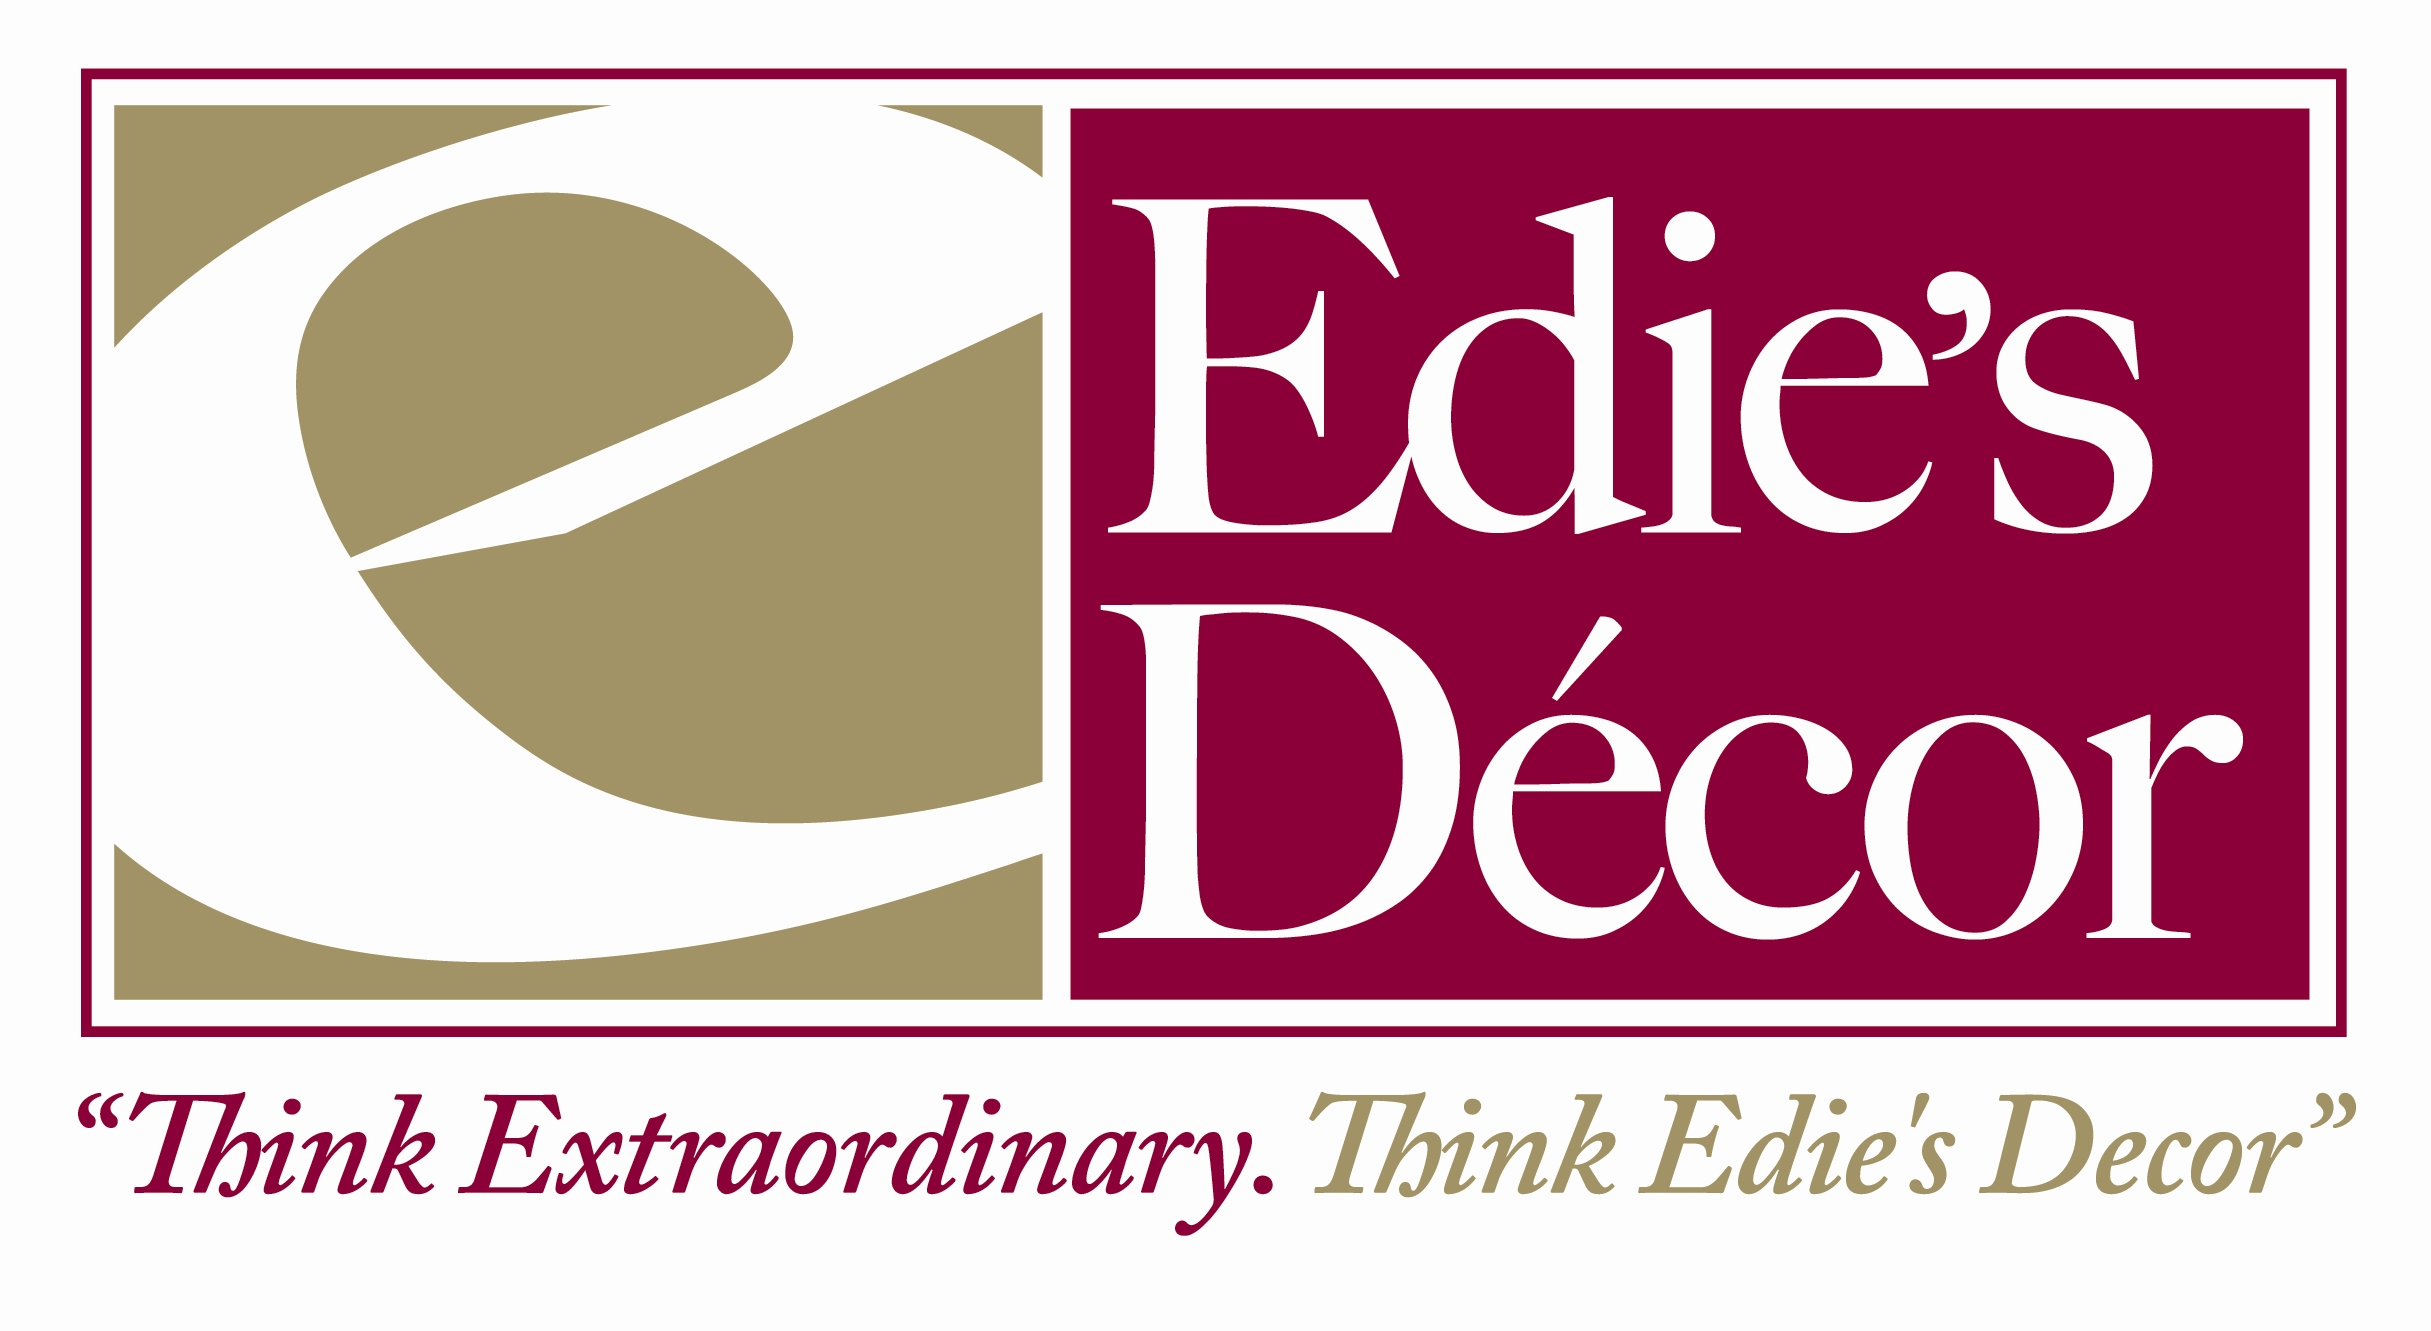 Edies Decor logo, E on the left with their name to the right. Below is their slogan, Think Extraordinary. Think Edie's Decor.